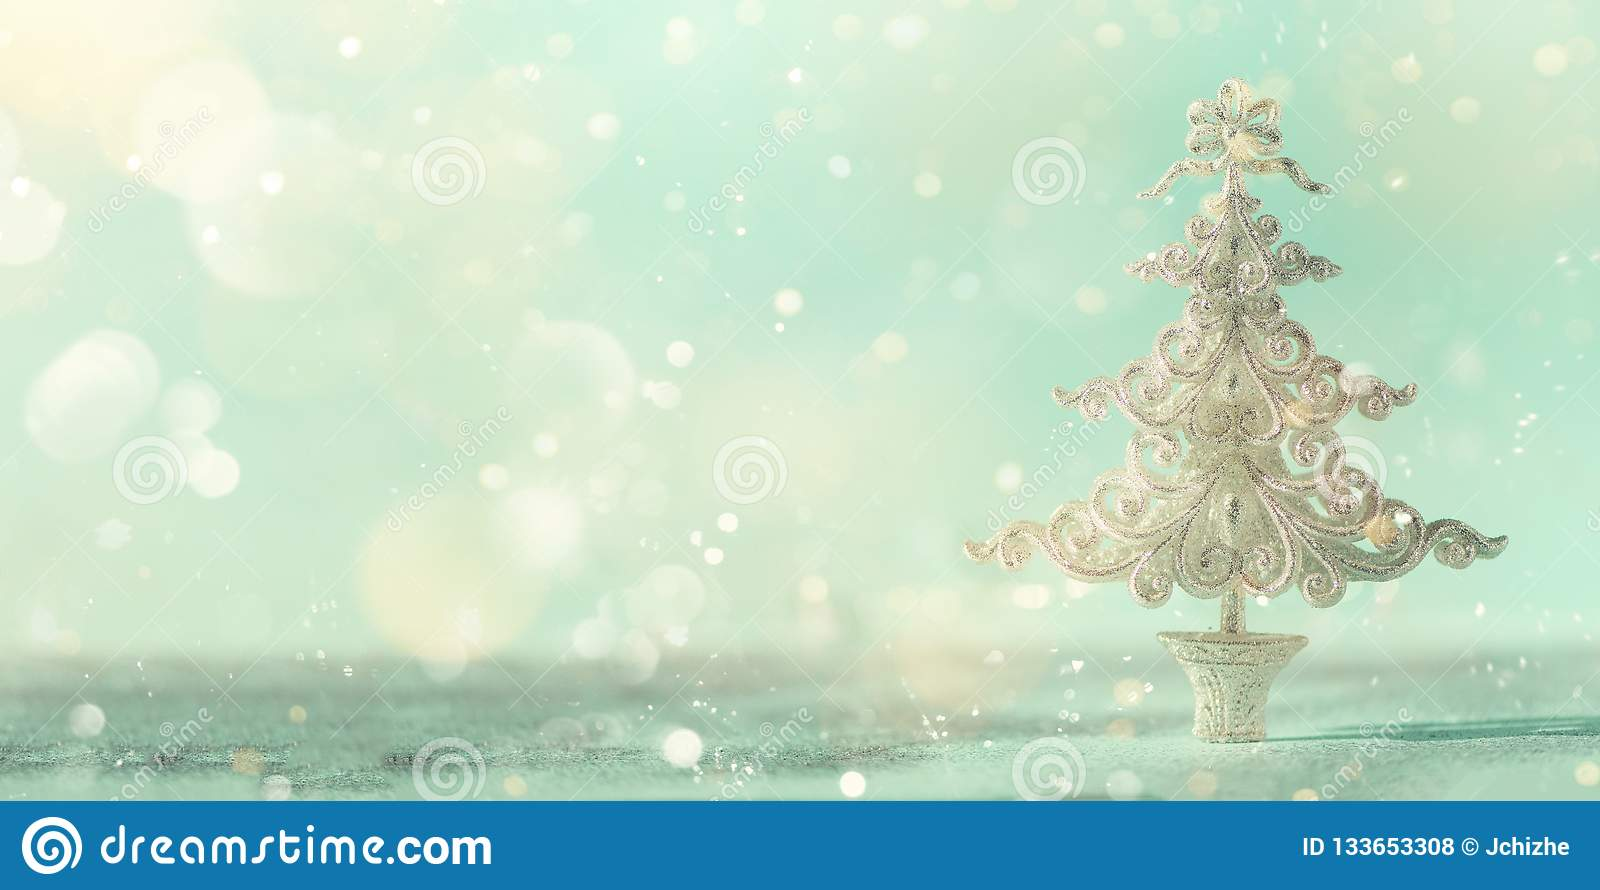 Silver glitter Christmas tree on blue background with lights bokeh, copy space. Greeting card for new year party. Festive holiday